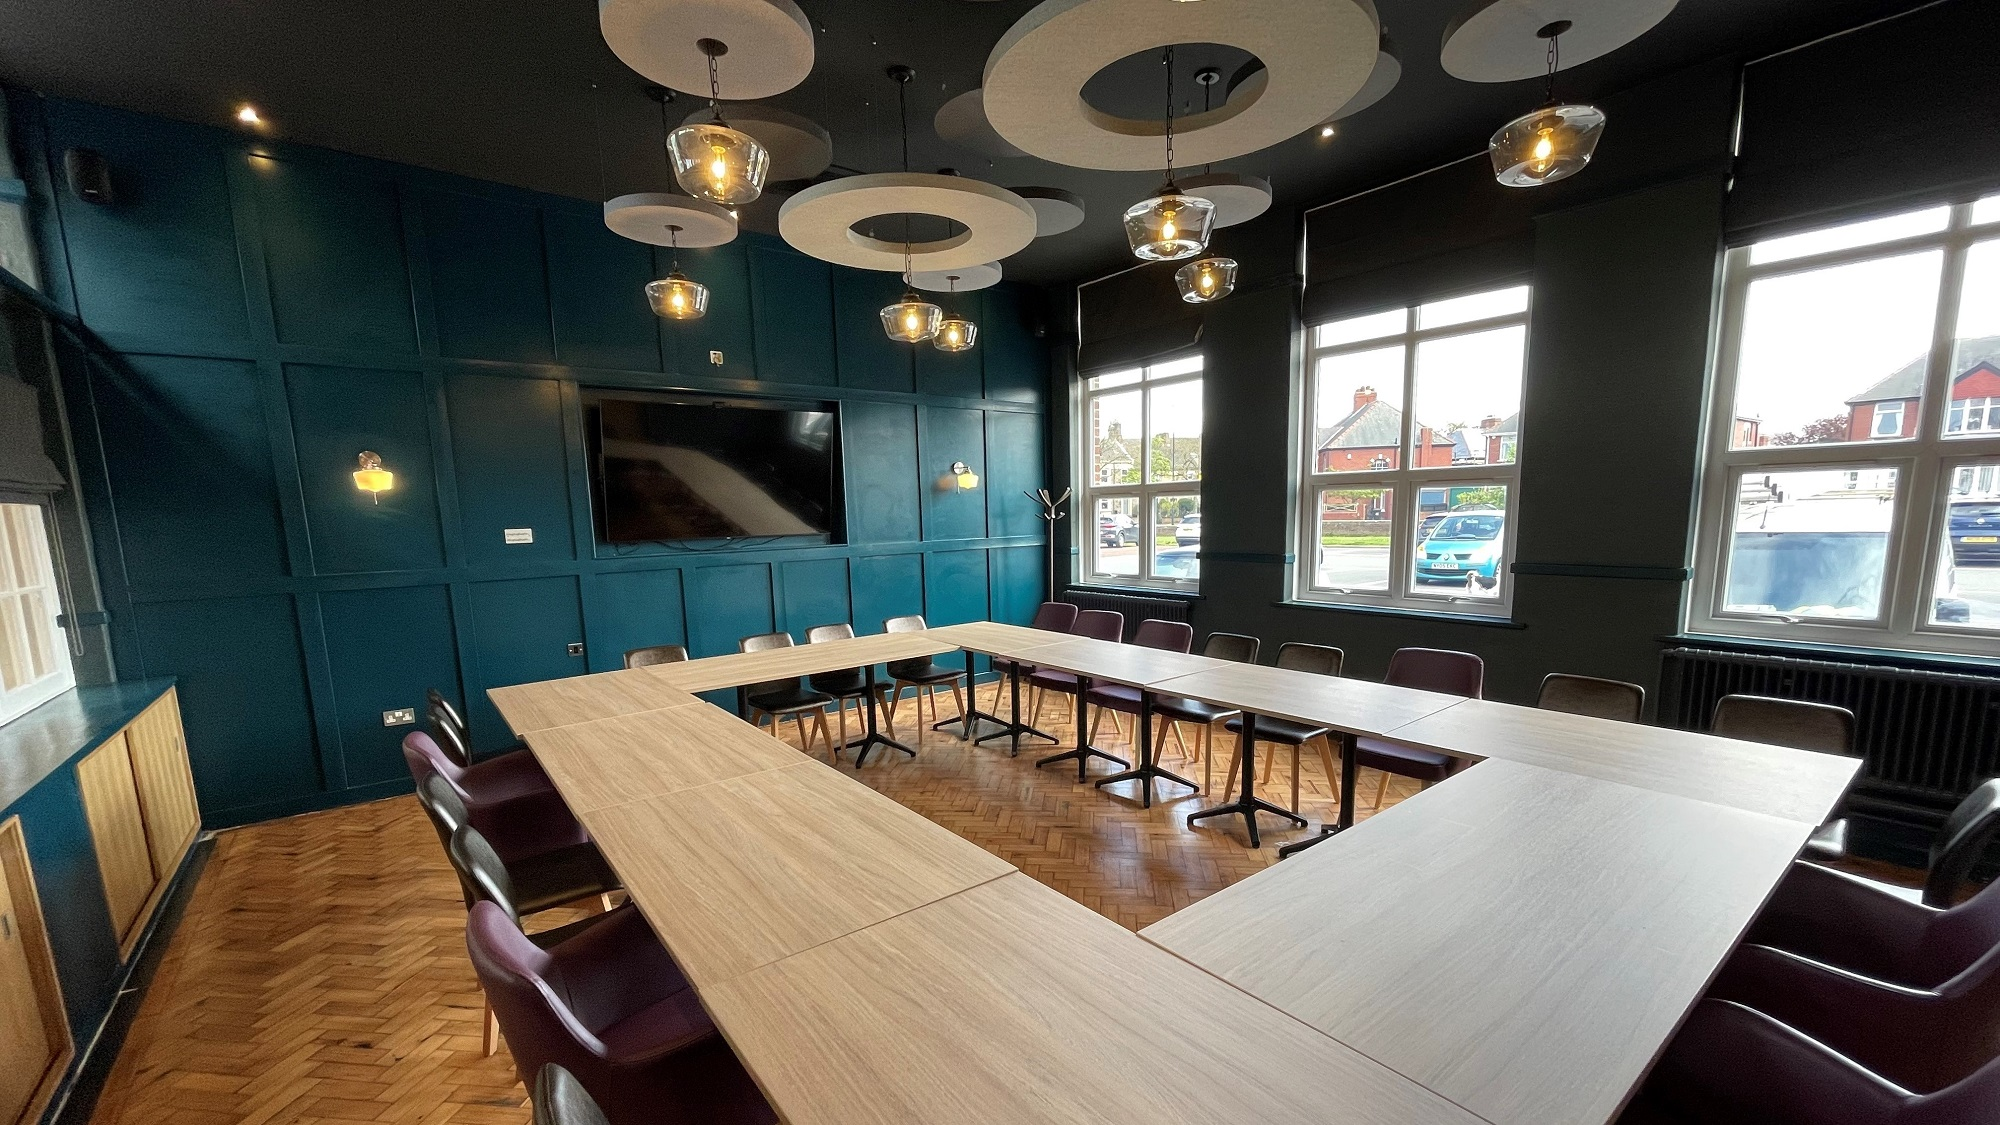 Langley Room – our new community space at Linskill